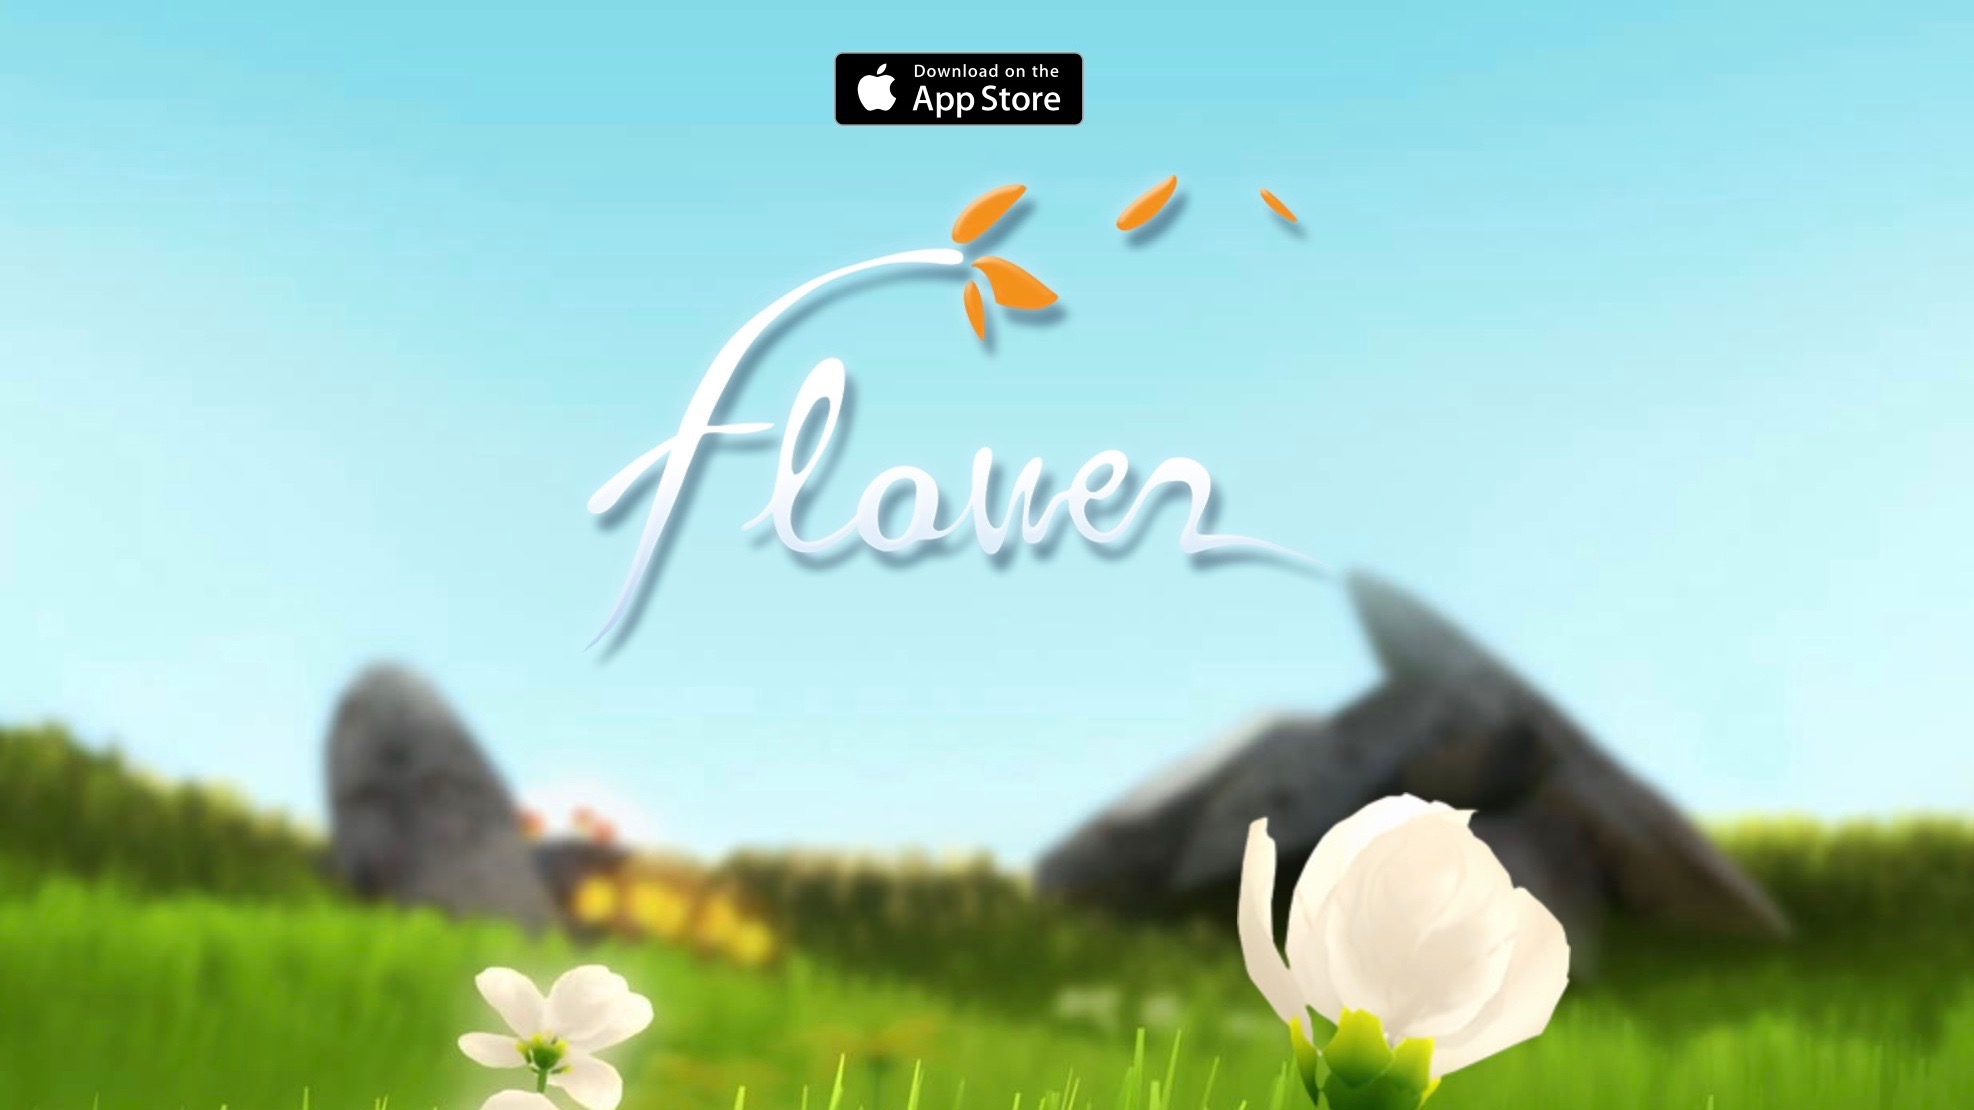 Popular interactive console game 'Flower' arrives on iOS